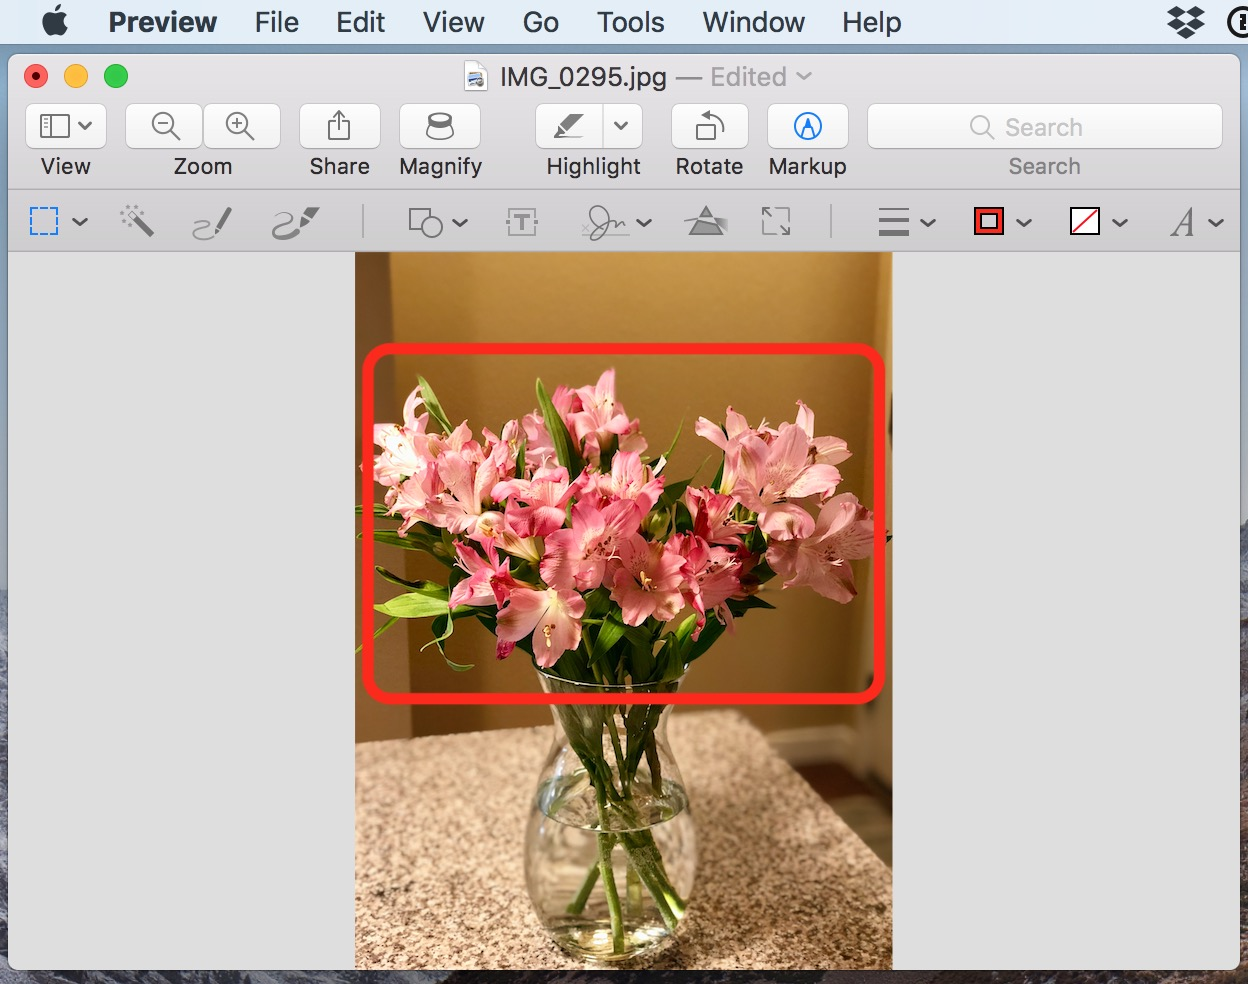 Editing in an image in Preview